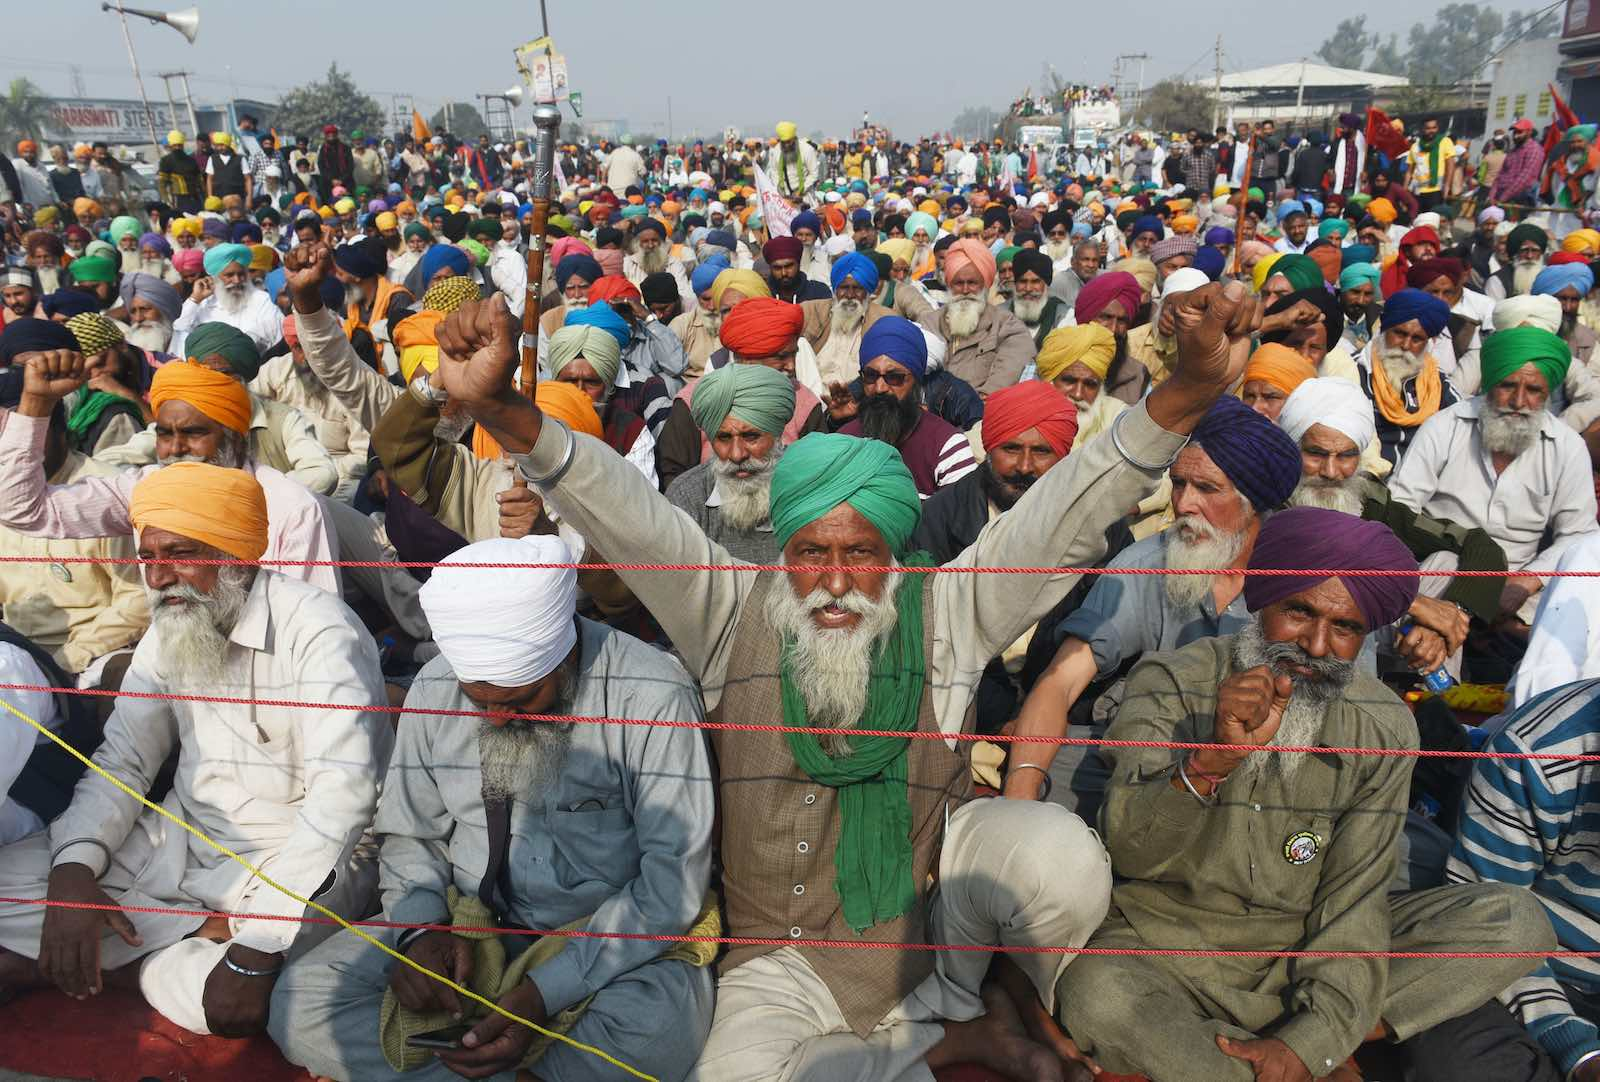 Farmers protesting India's farm reform laws on 1 December in New Delhi (Vipin Kumar/Hindustan Times via Getty Images)